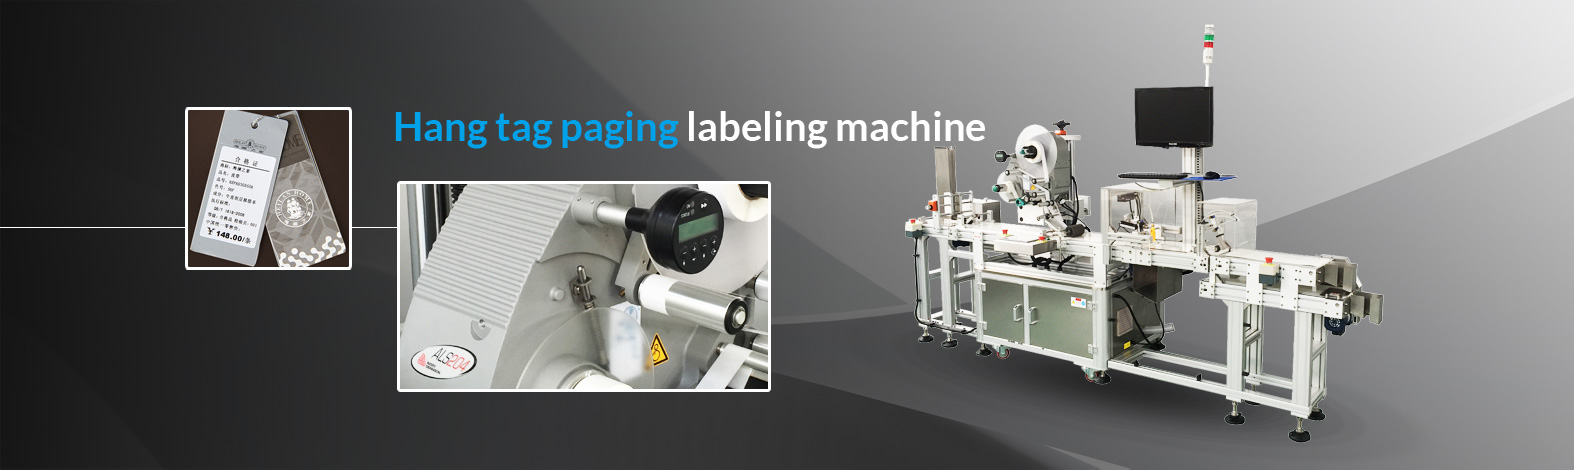 Hang tag paging labeling machine